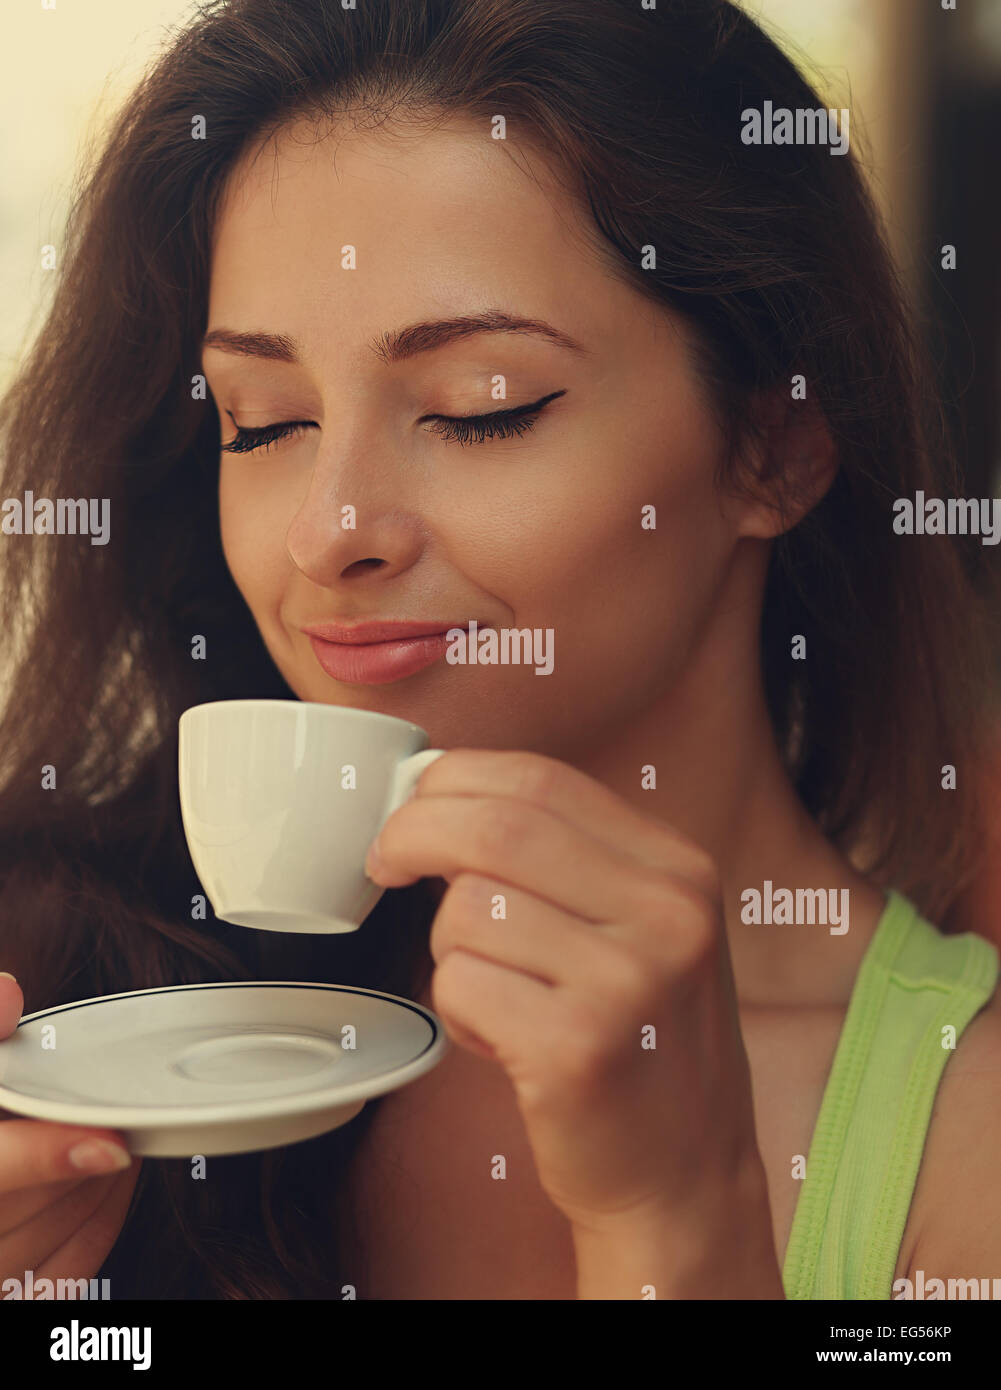 Beautiful happy woman drinking coffee with closed eye. Closeup vintage portrait - Stock Image